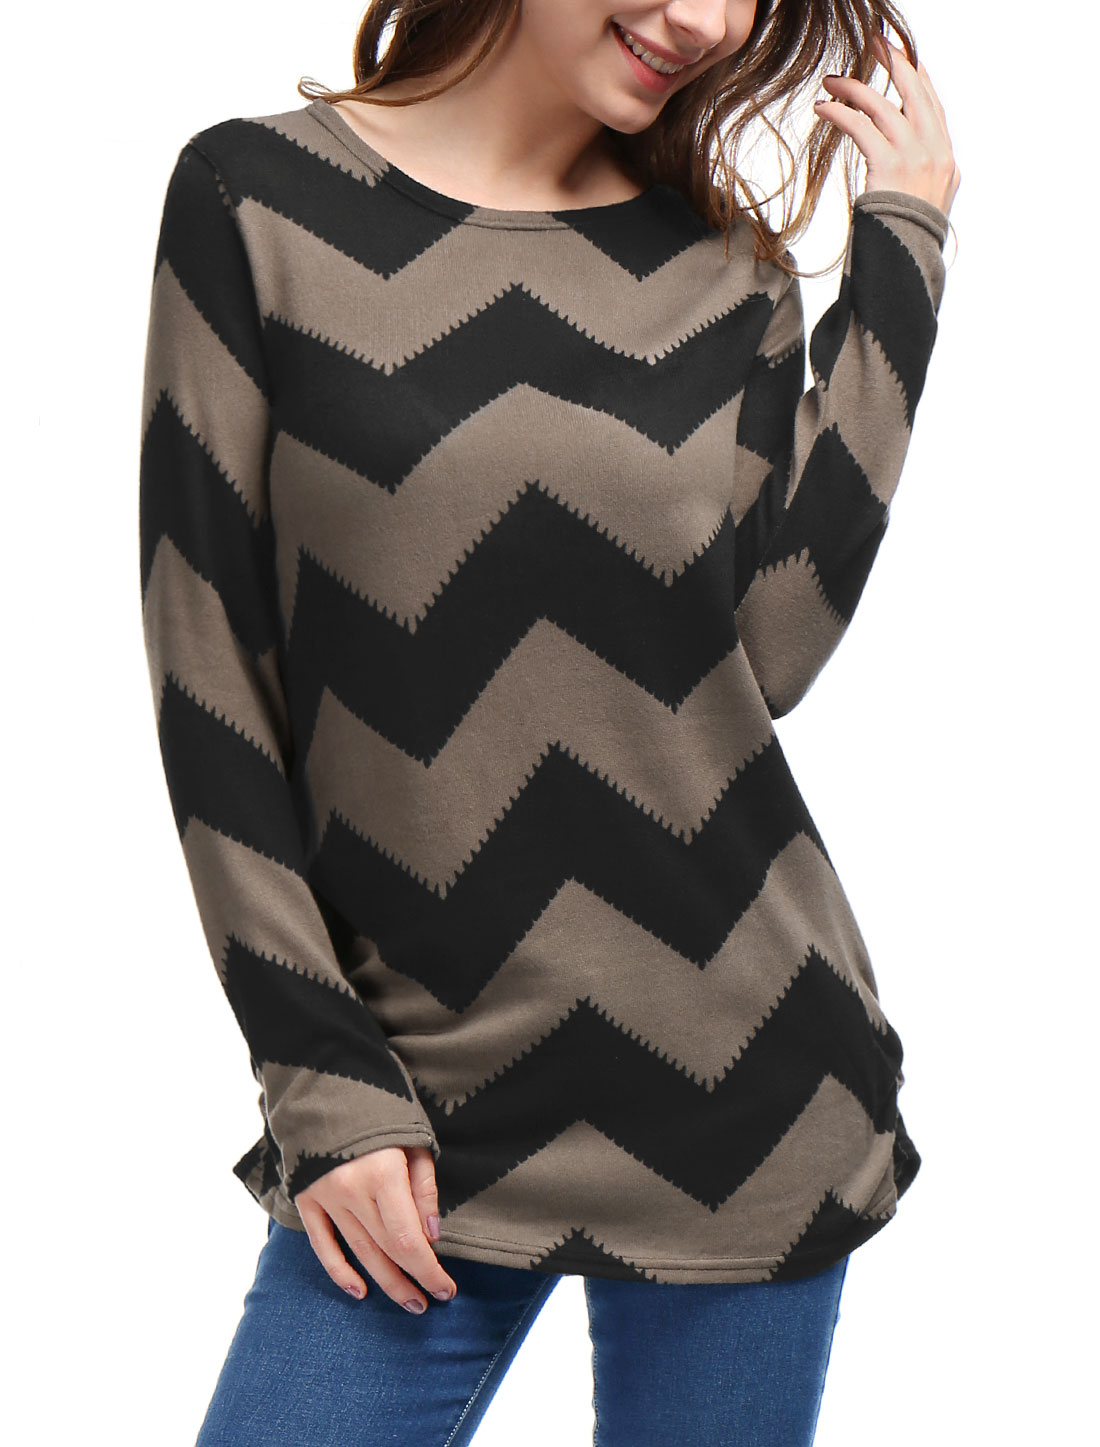 Woman Zig-Zag Pattern Knitted Relax Fit Tunic Top Black Brown S